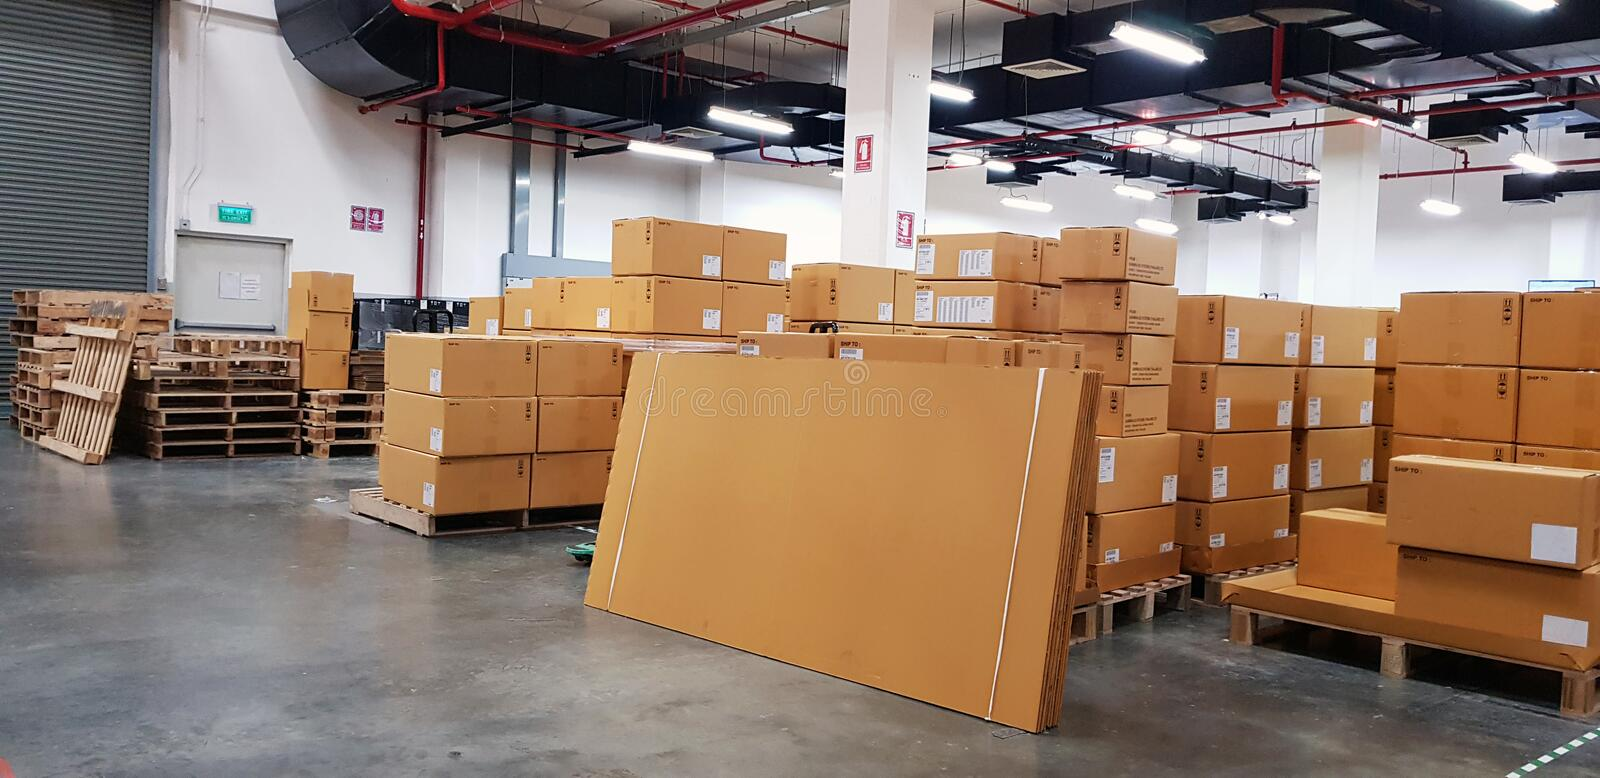 Large warehouse logistic or distribution center. Interior of warehouse with rows of shelves with big boxes.  royalty free stock image